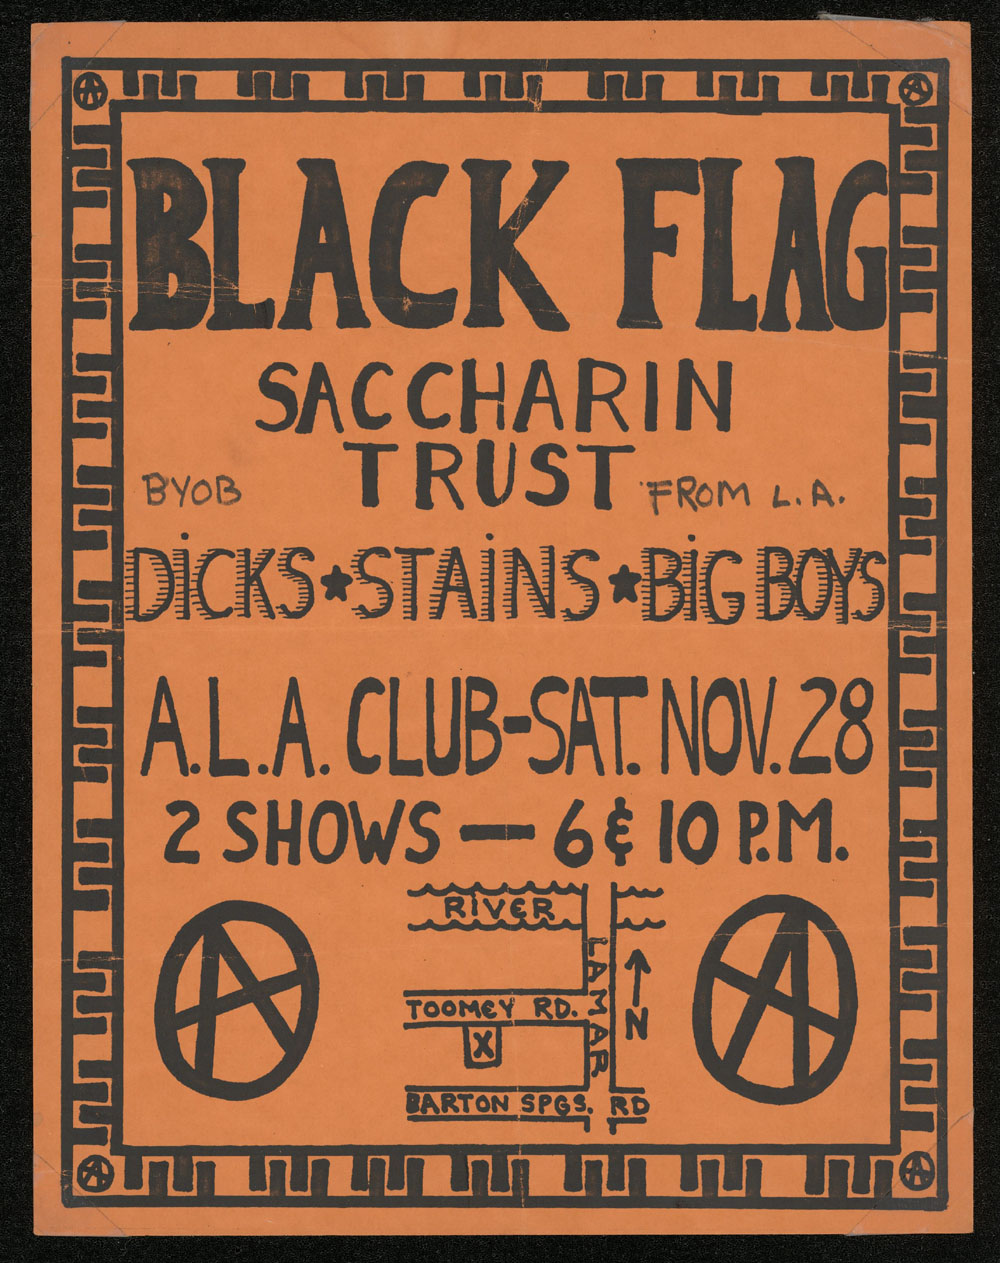 BLACK FLAG w/ Saccharine Trust, Big Boys, Dicks, Stains at ALA Club